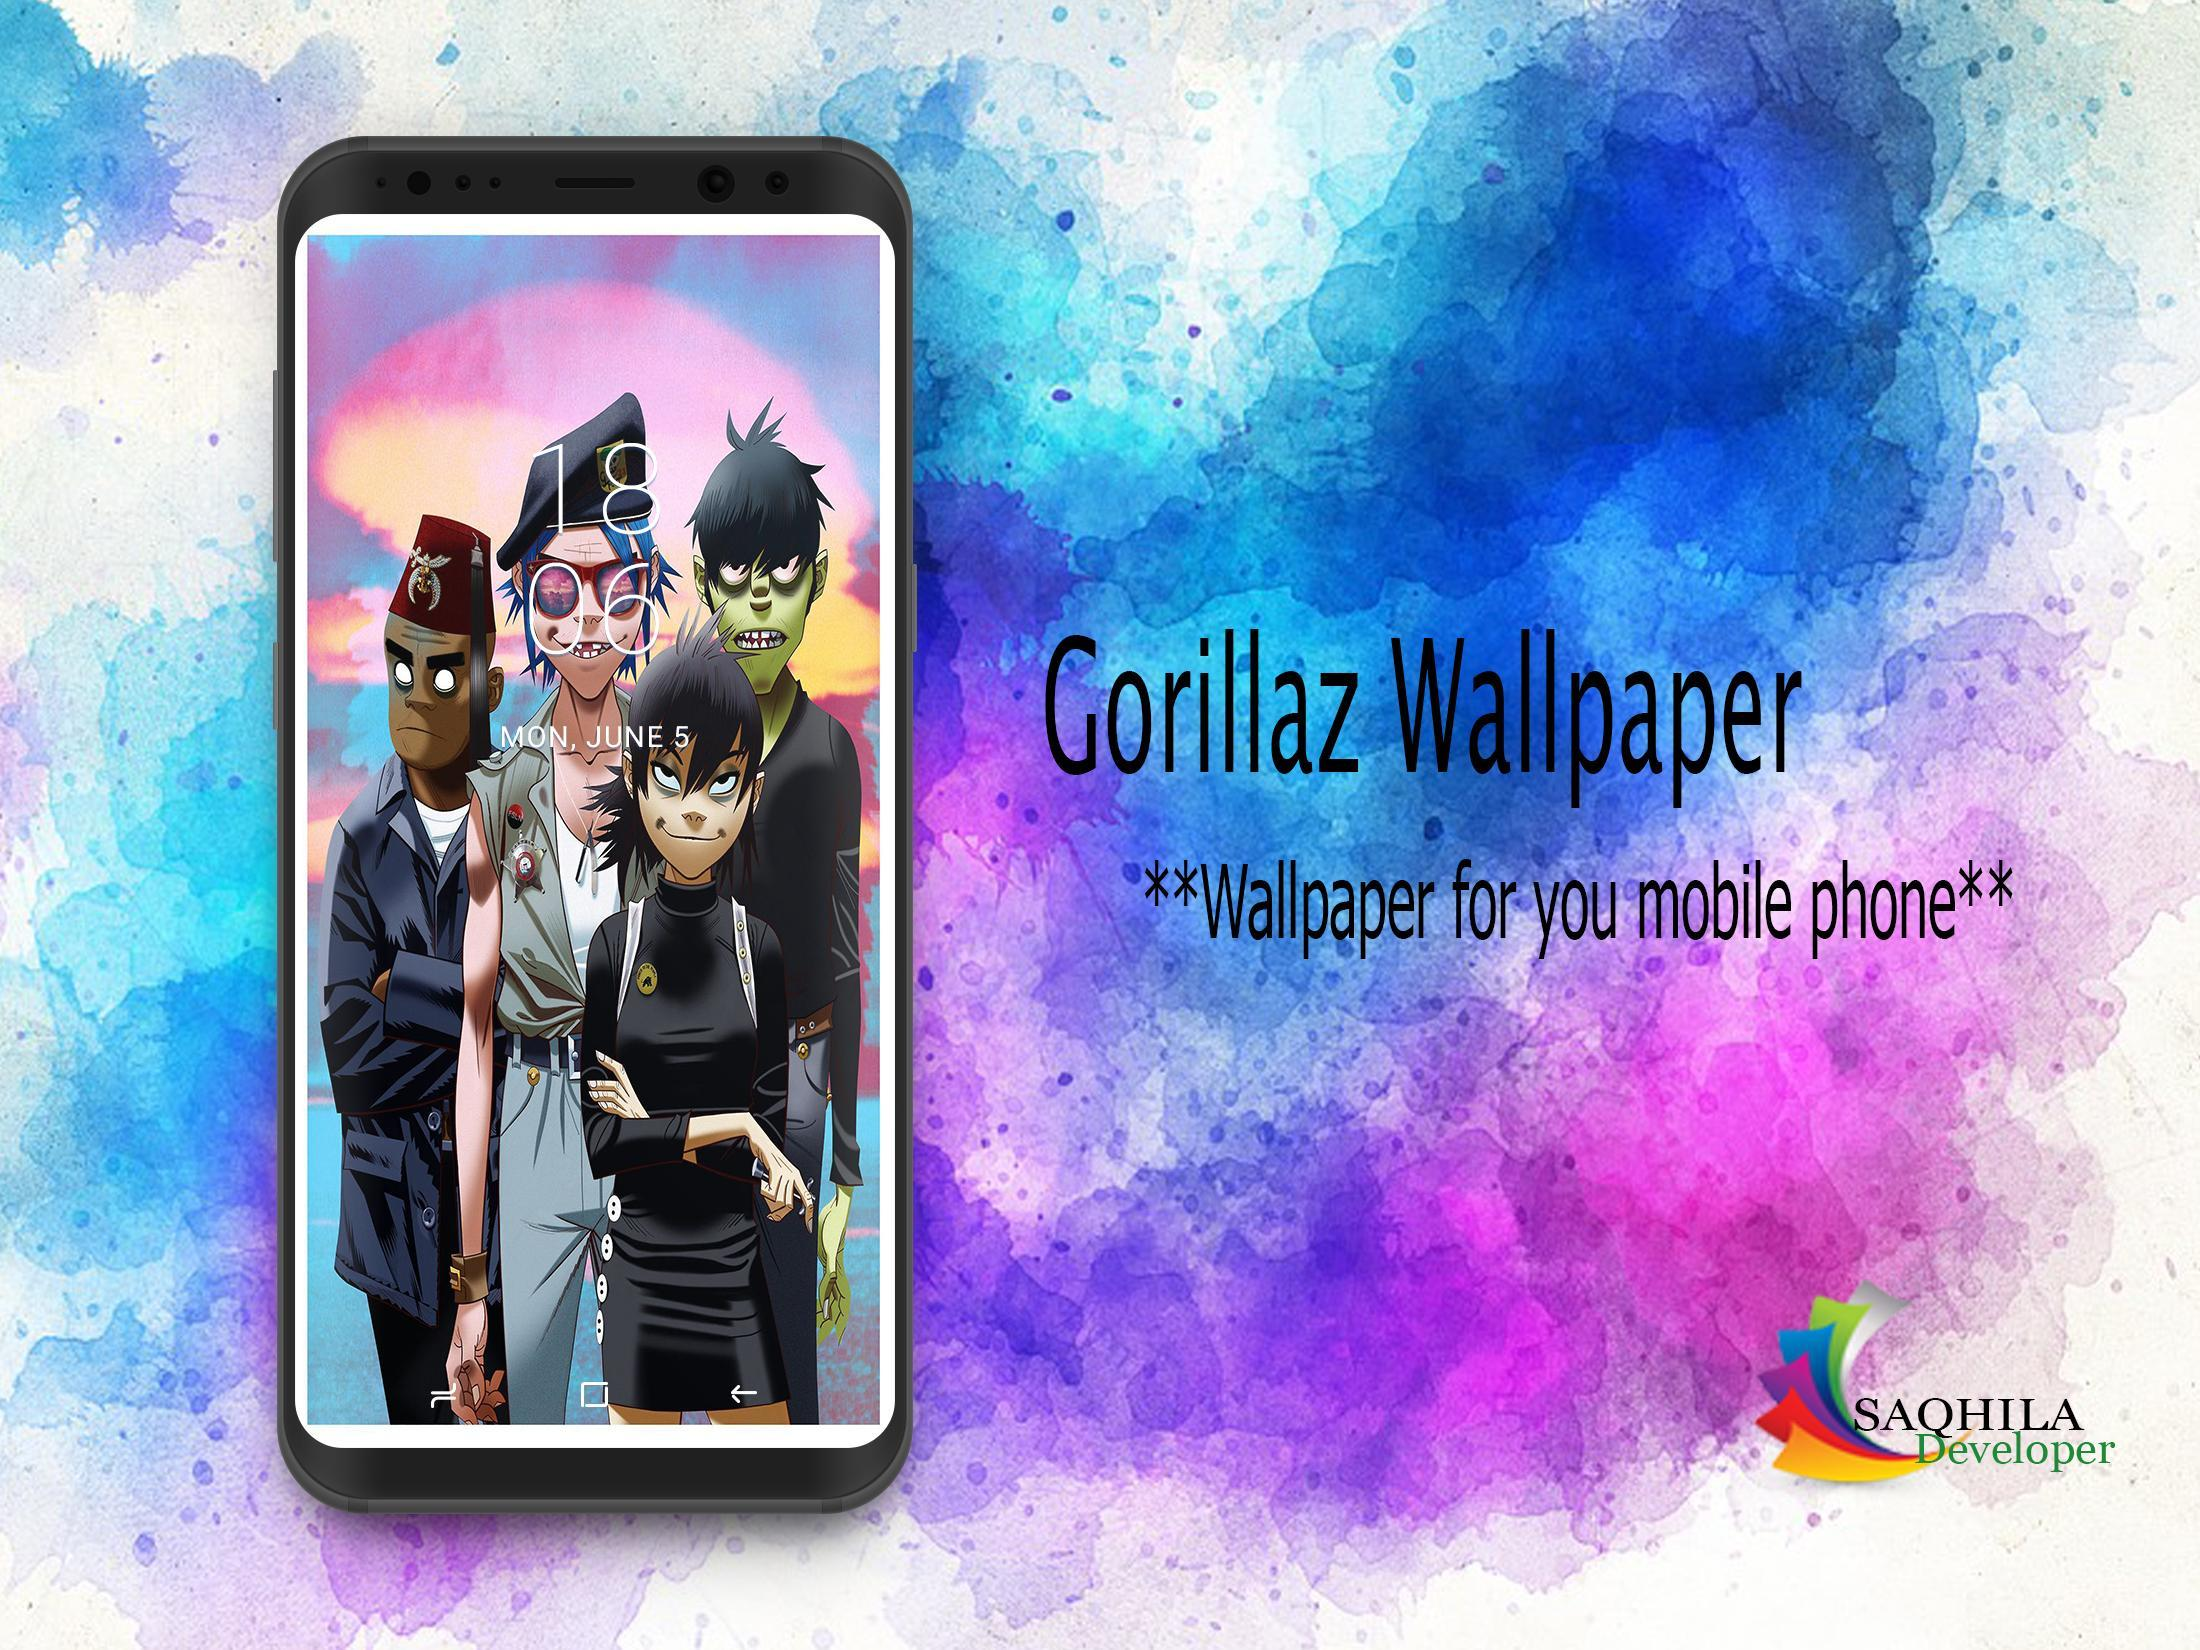 Gorillaz Wallpaper For Android Apk Download